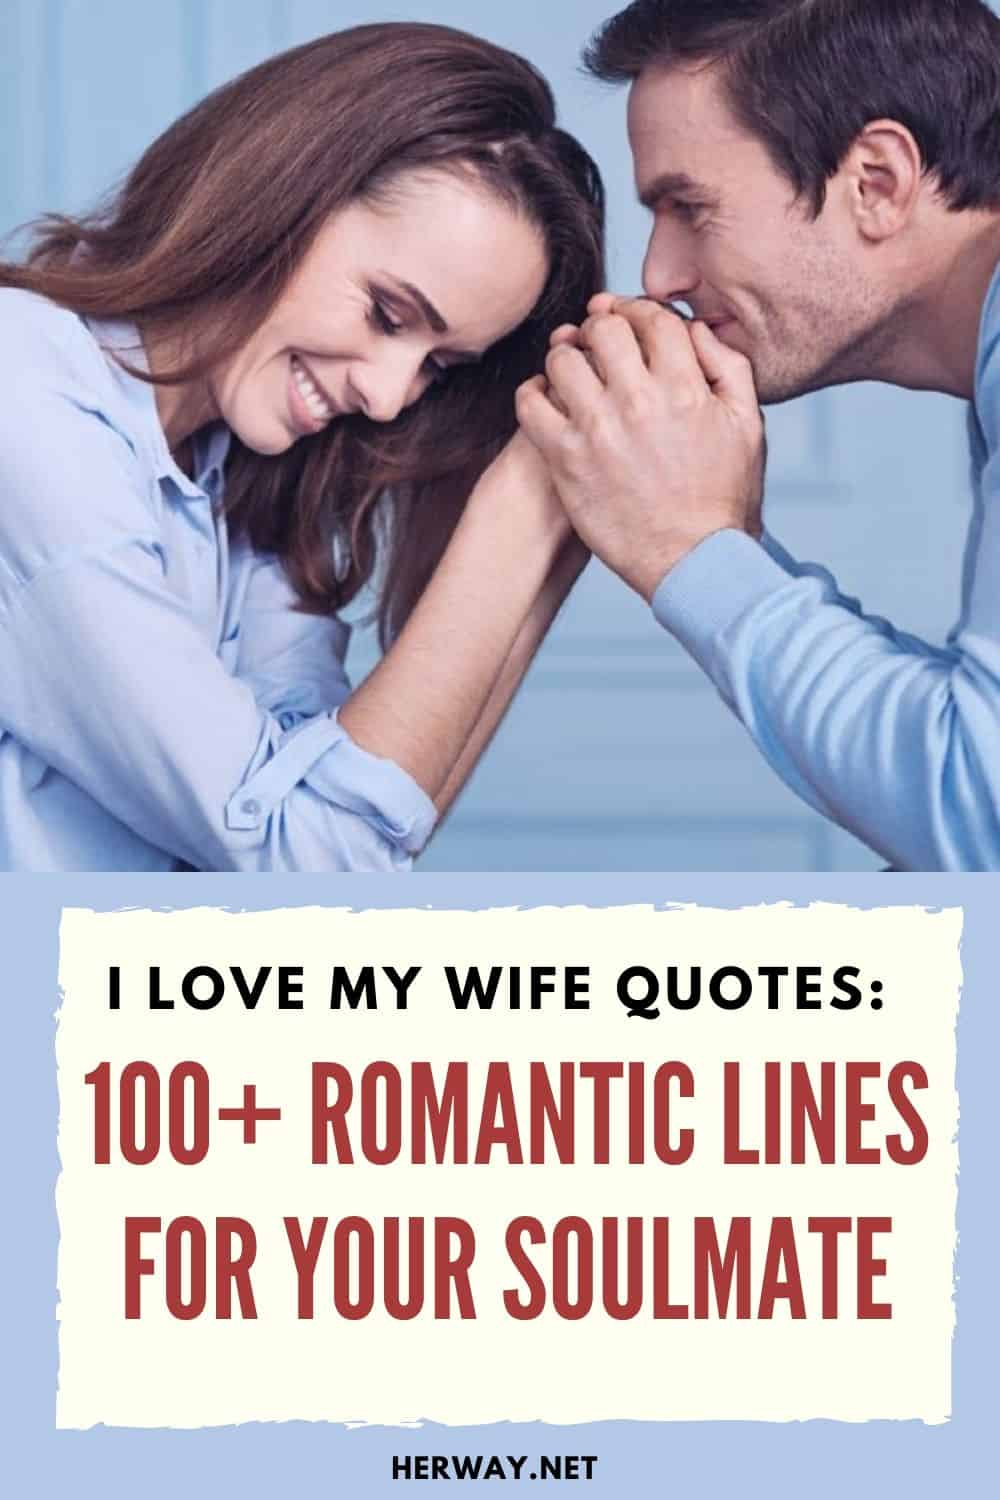 I Love My Wife Quotes: 100+ Romantic Lines For Your Soulmate pinterest